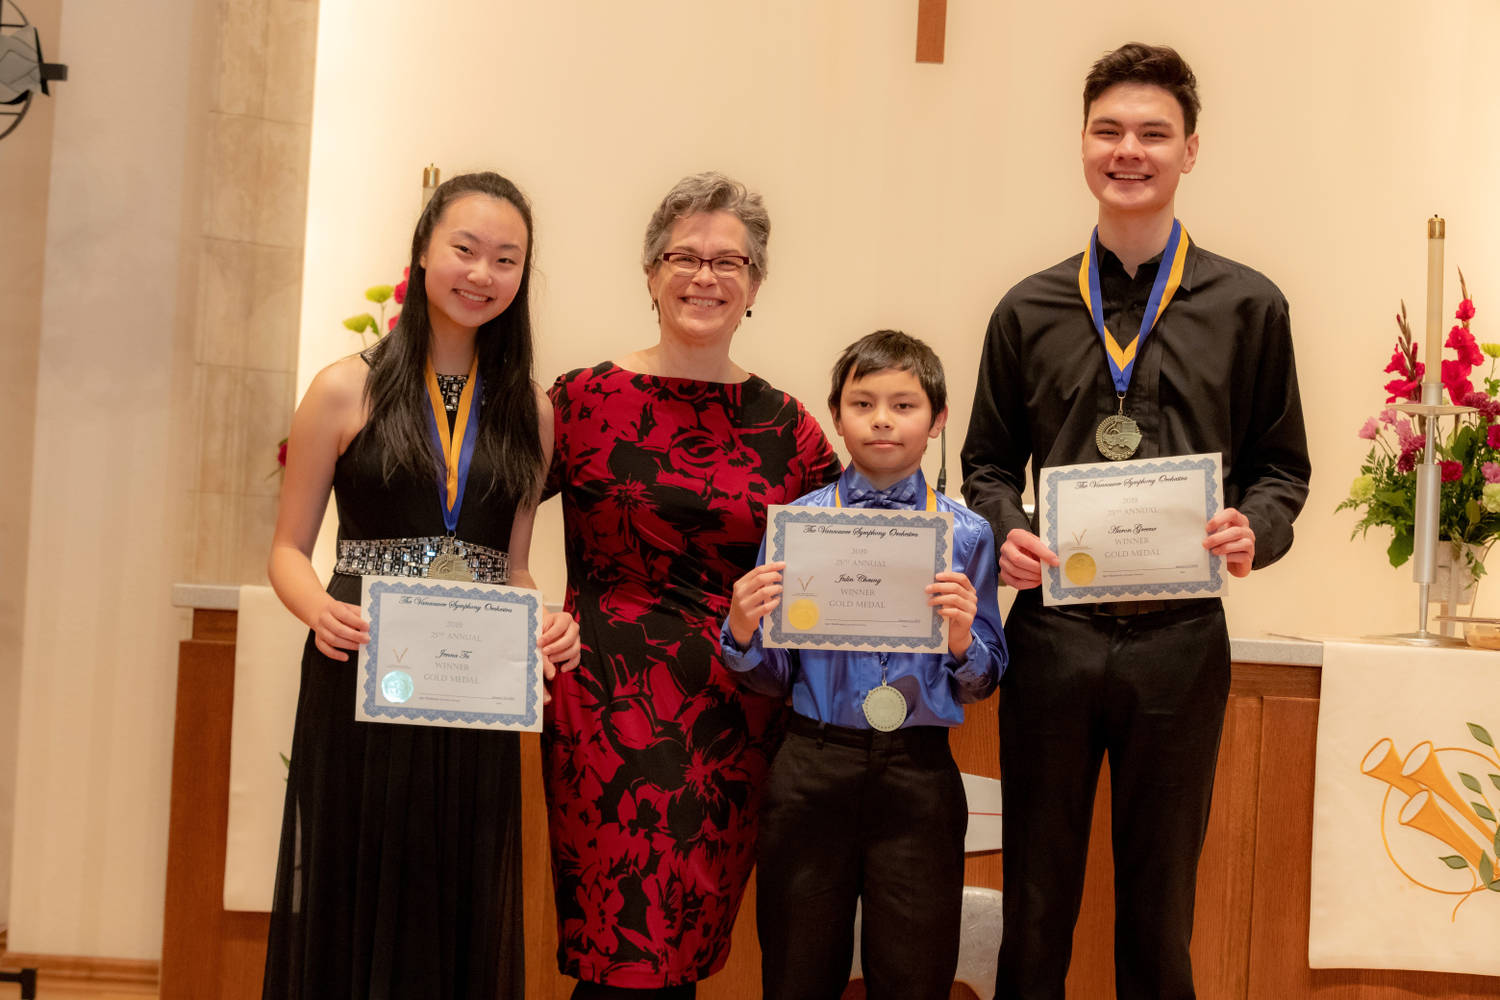 THE VANCOUVER SYMPHONY ORCHESTRA SUBSTANTIALLY INCREASES ITS 26TH ANNUAL YOUNG ARTISTS COMPETITION PRIZES